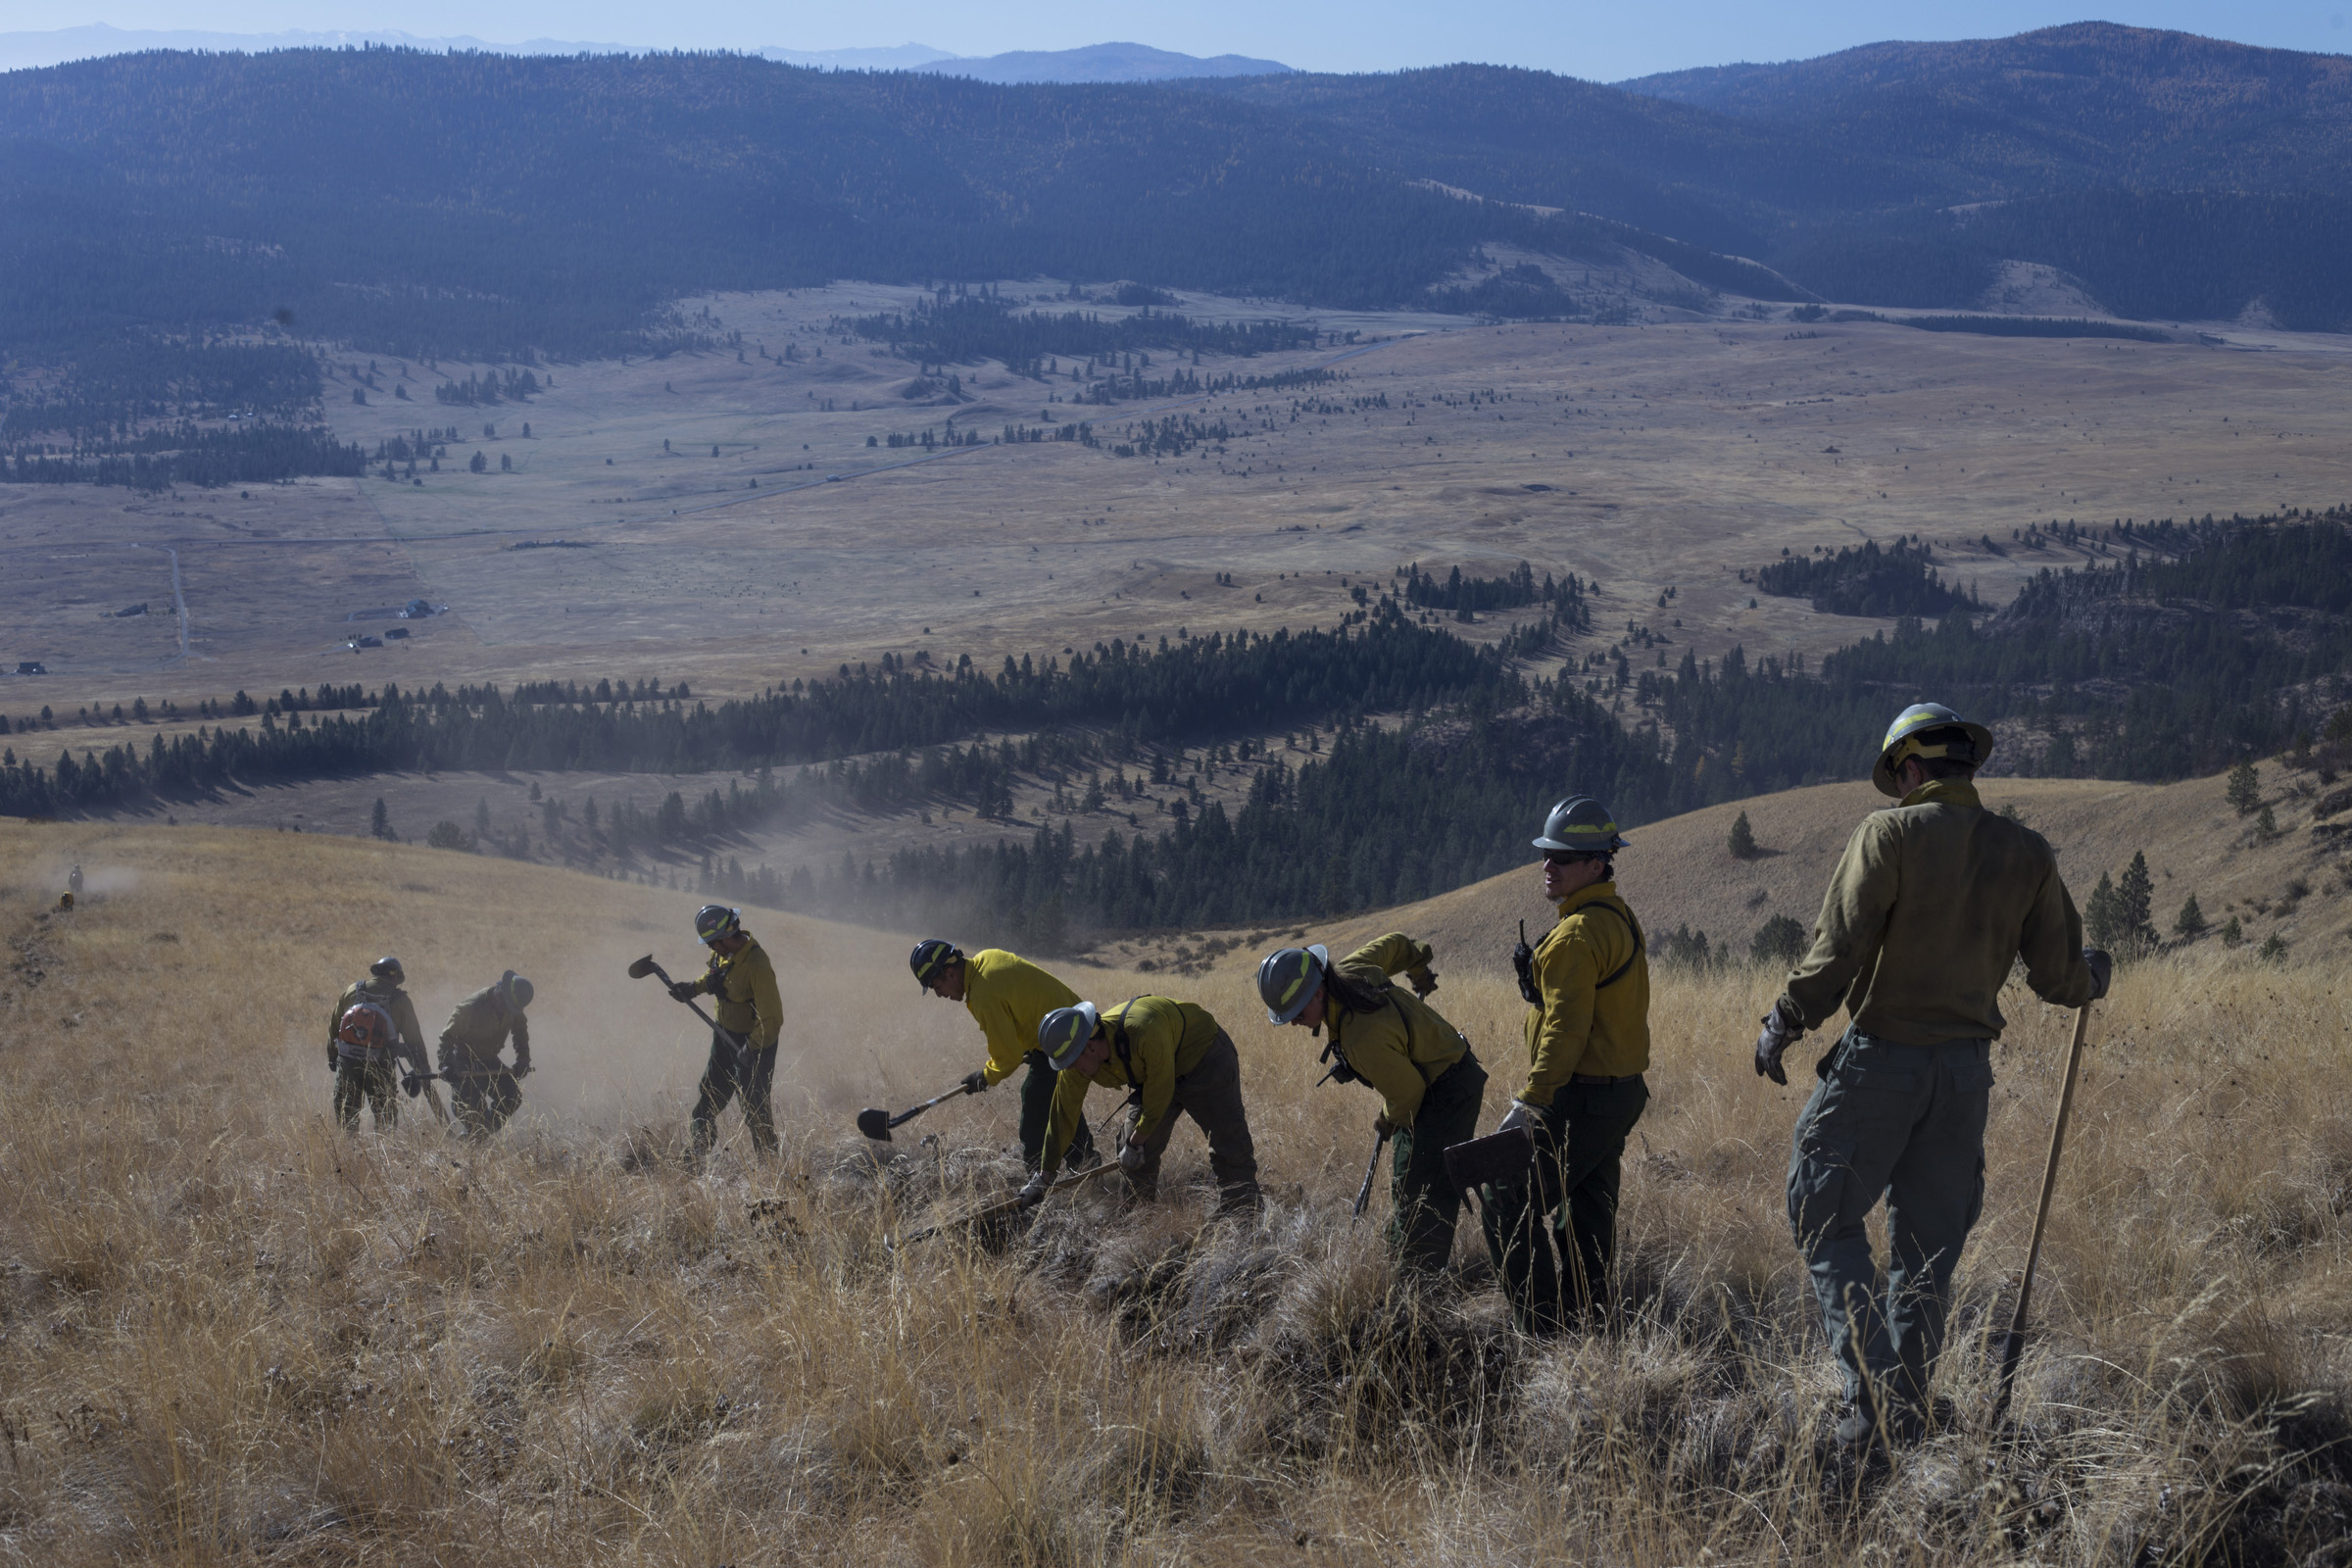 Members of the Confederated Salish and Kootenai Tribes Division of Fire prepare a barrier for a prescribed burn just along a ridge line outside of Elmo, Montana, on Tuesday, October 24, 2017. (Photo by Brittany Greeson)